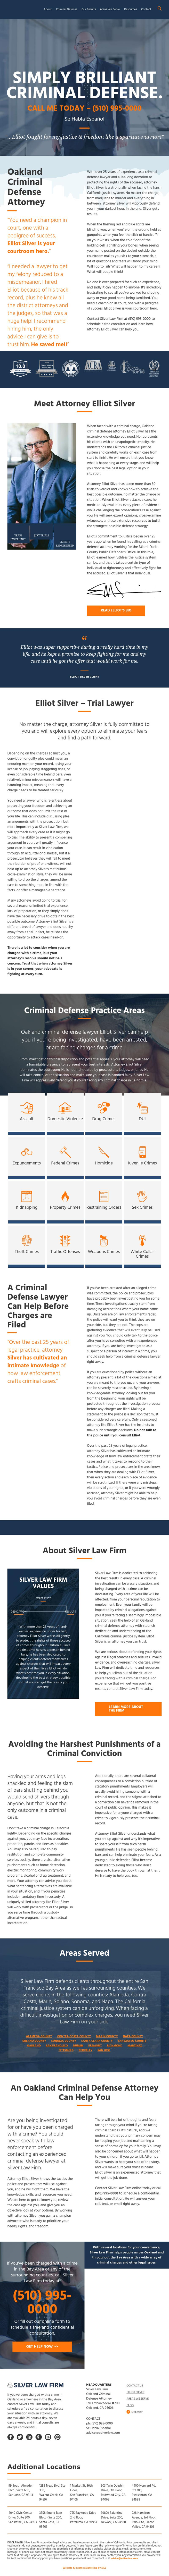 Silver Law Firm - Oakland CA Lawyers